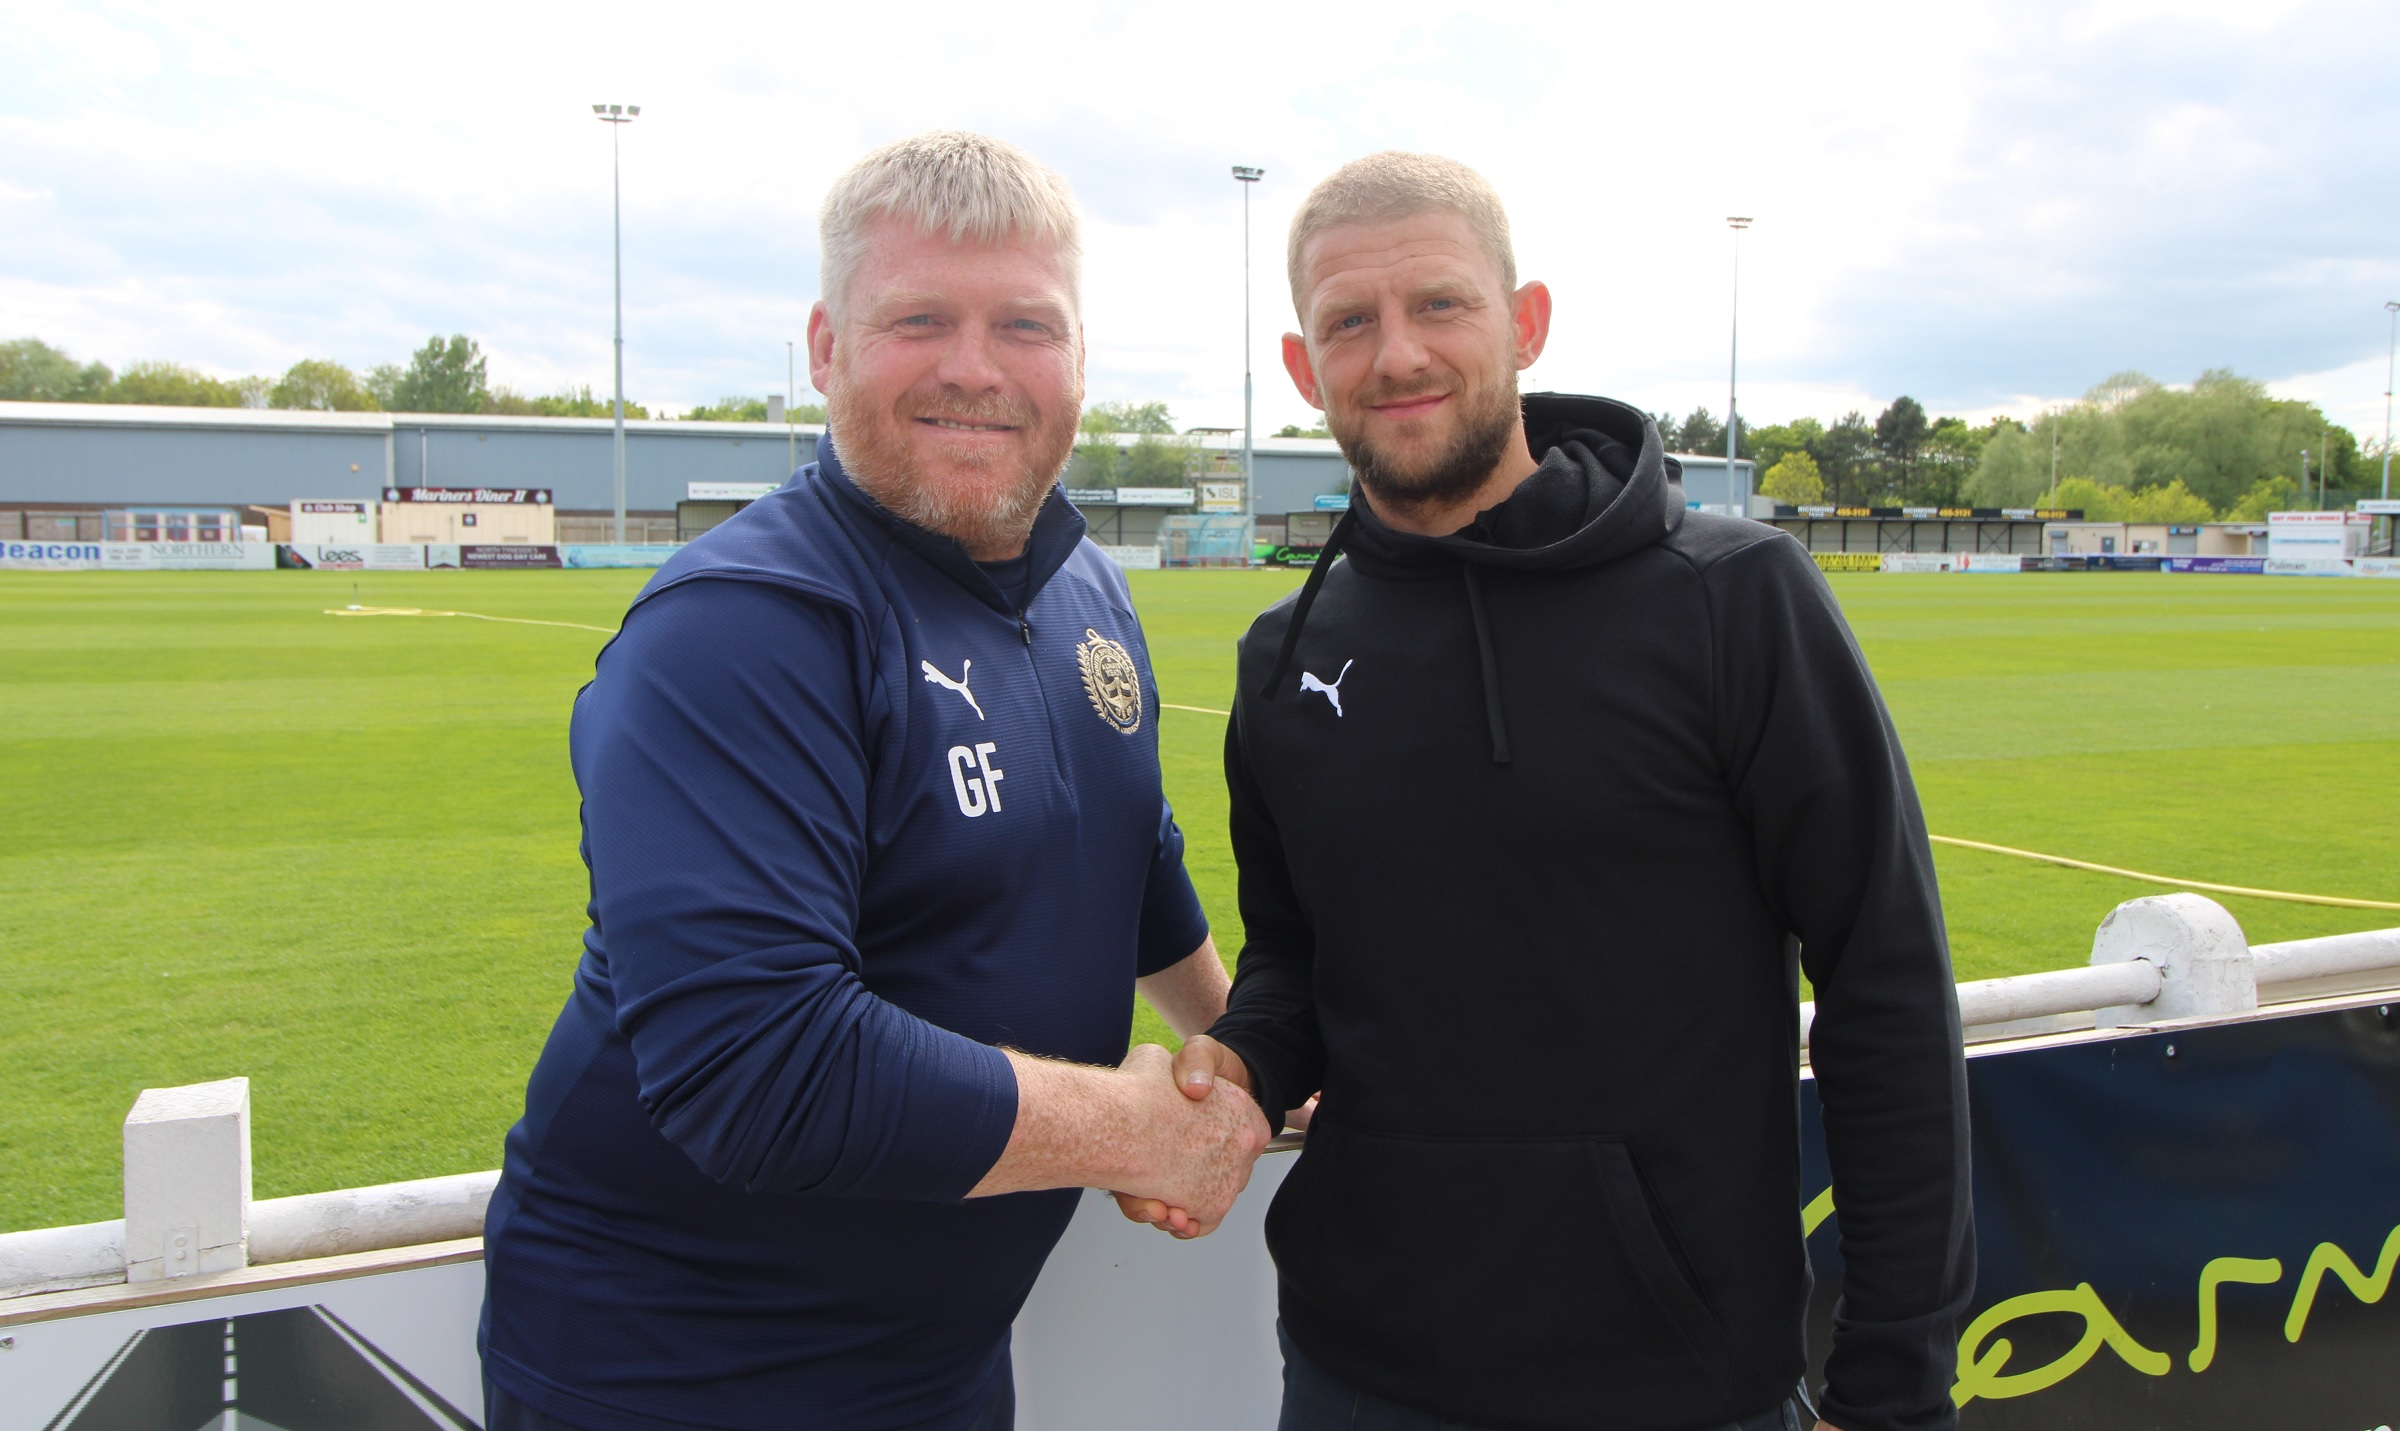 Craig Baxter signs new contract with South Shields